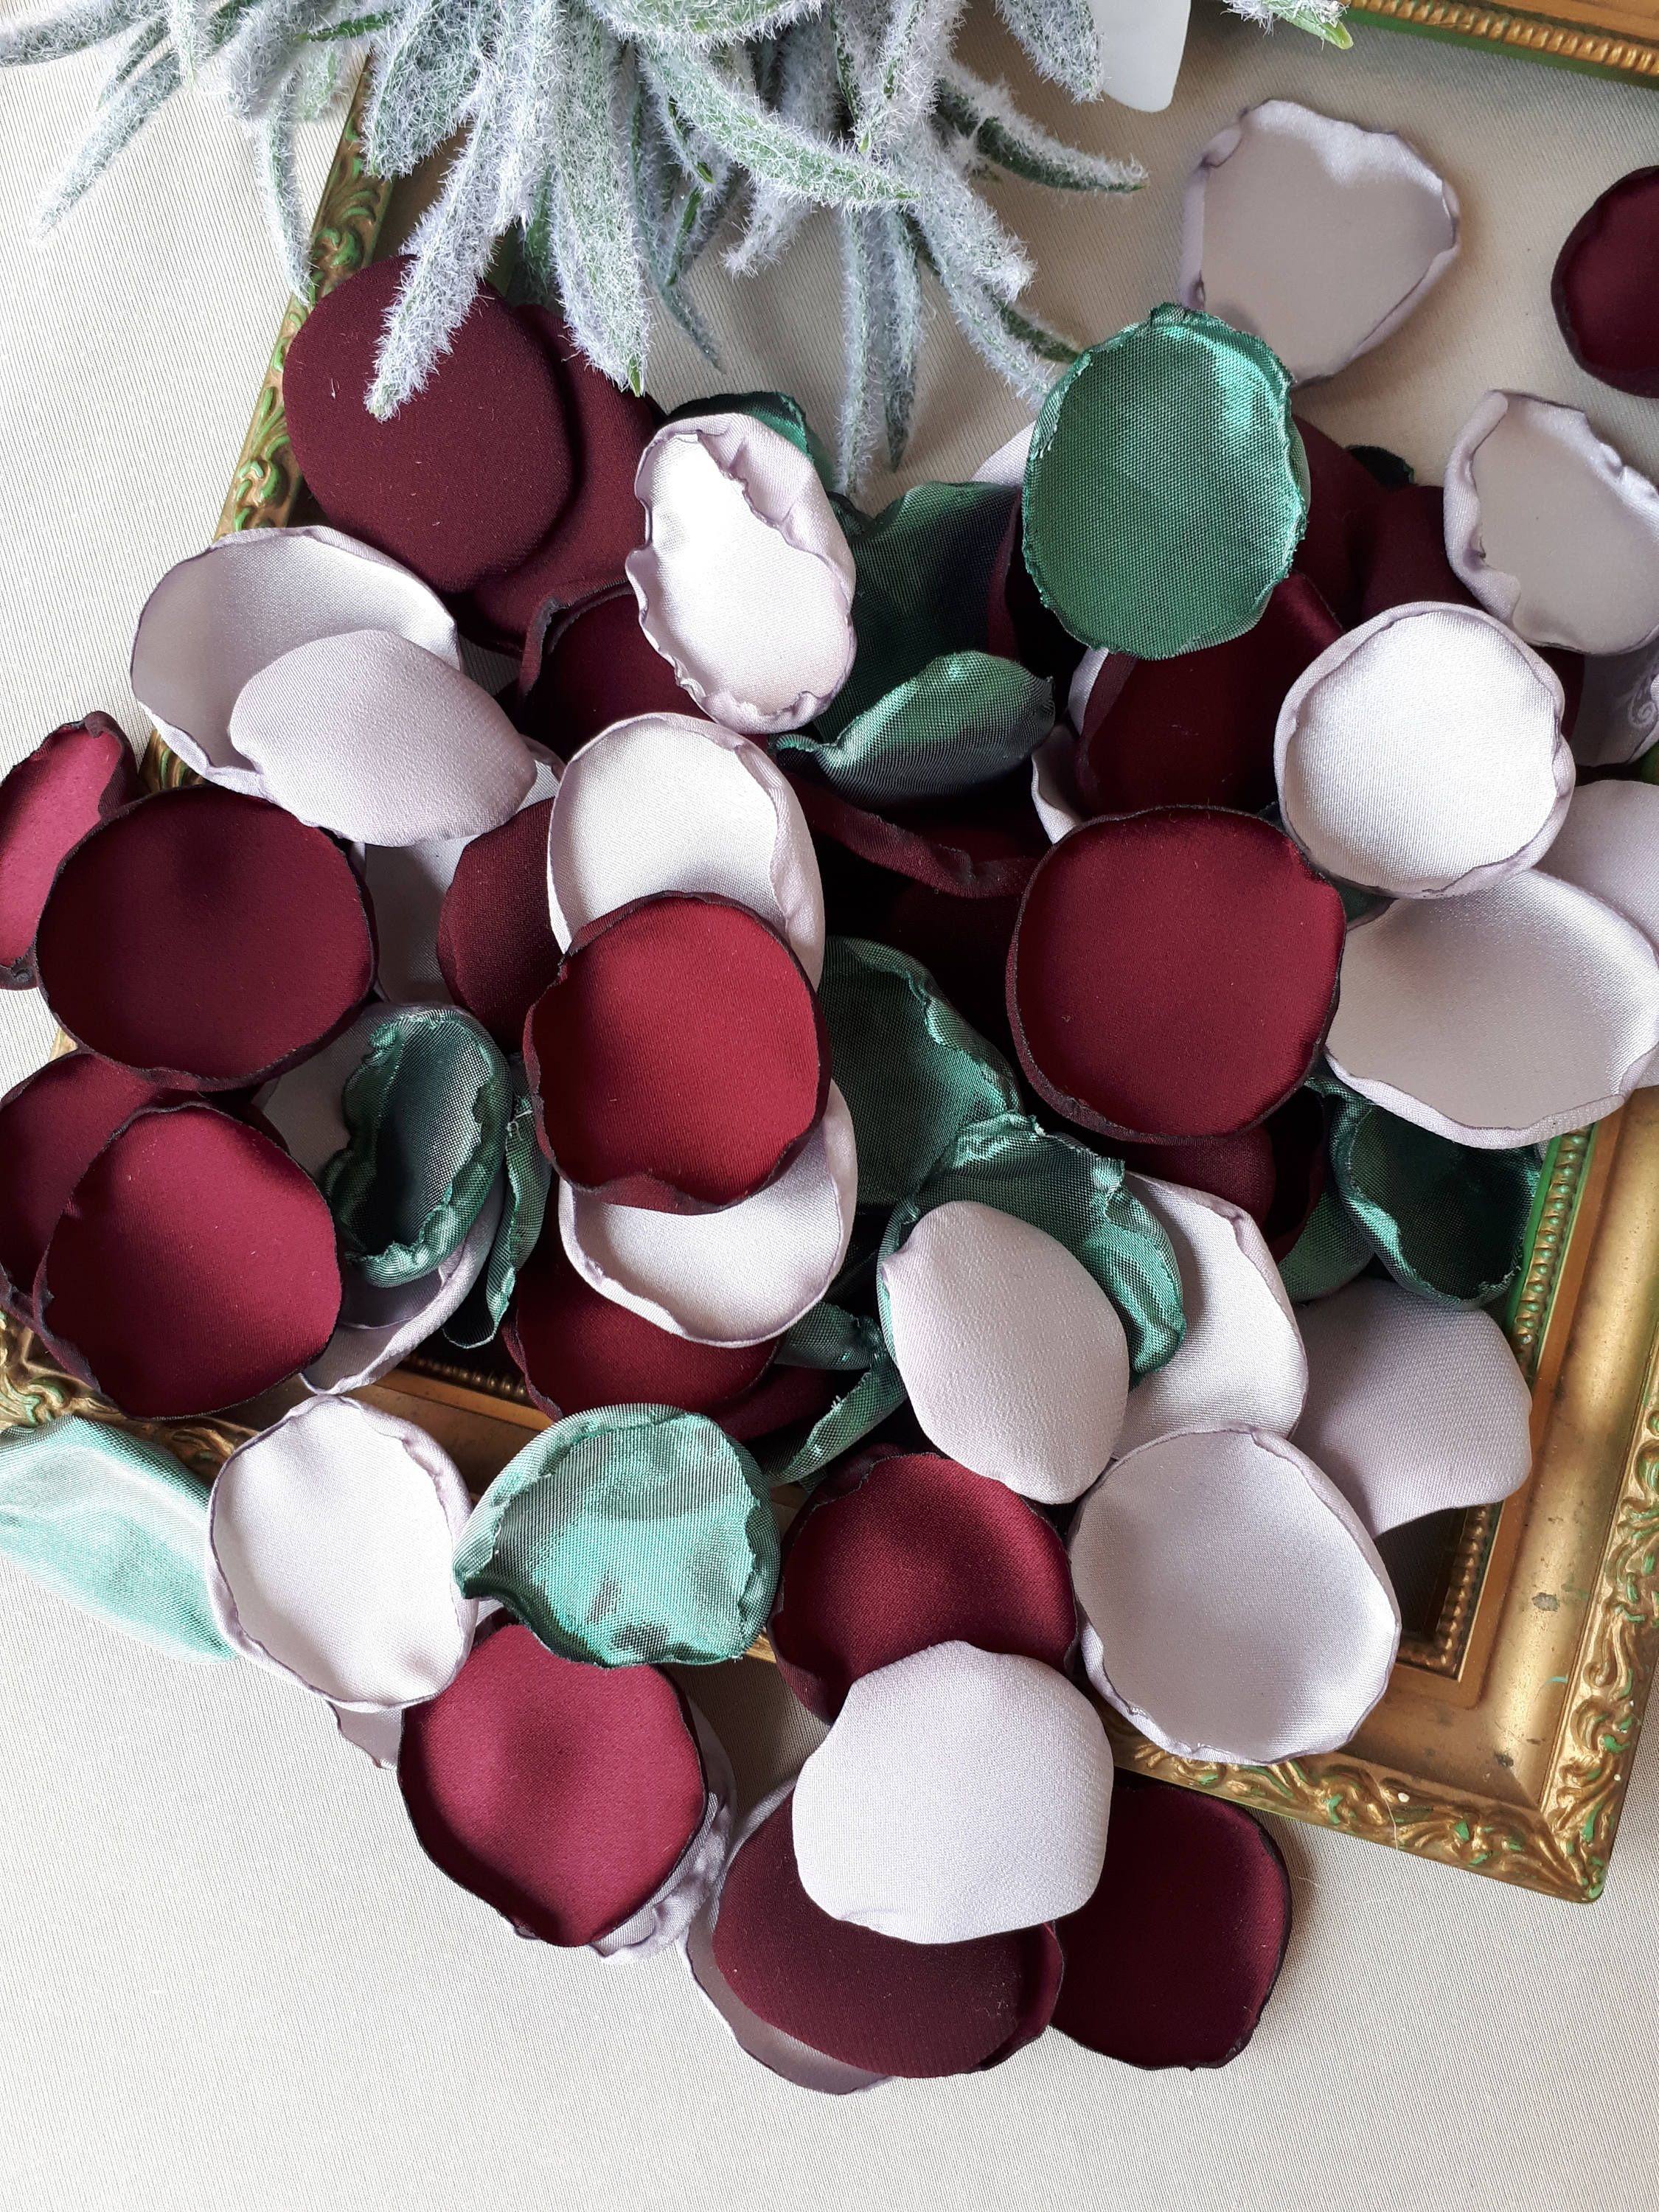 Burgundy Gray Satin Green Rose Petals Winter Wedding Christmas Party Decor Burgundy And Silver Table Deco Elegant Party Supplies Petals Christmas Party Decorations Winter Wedding